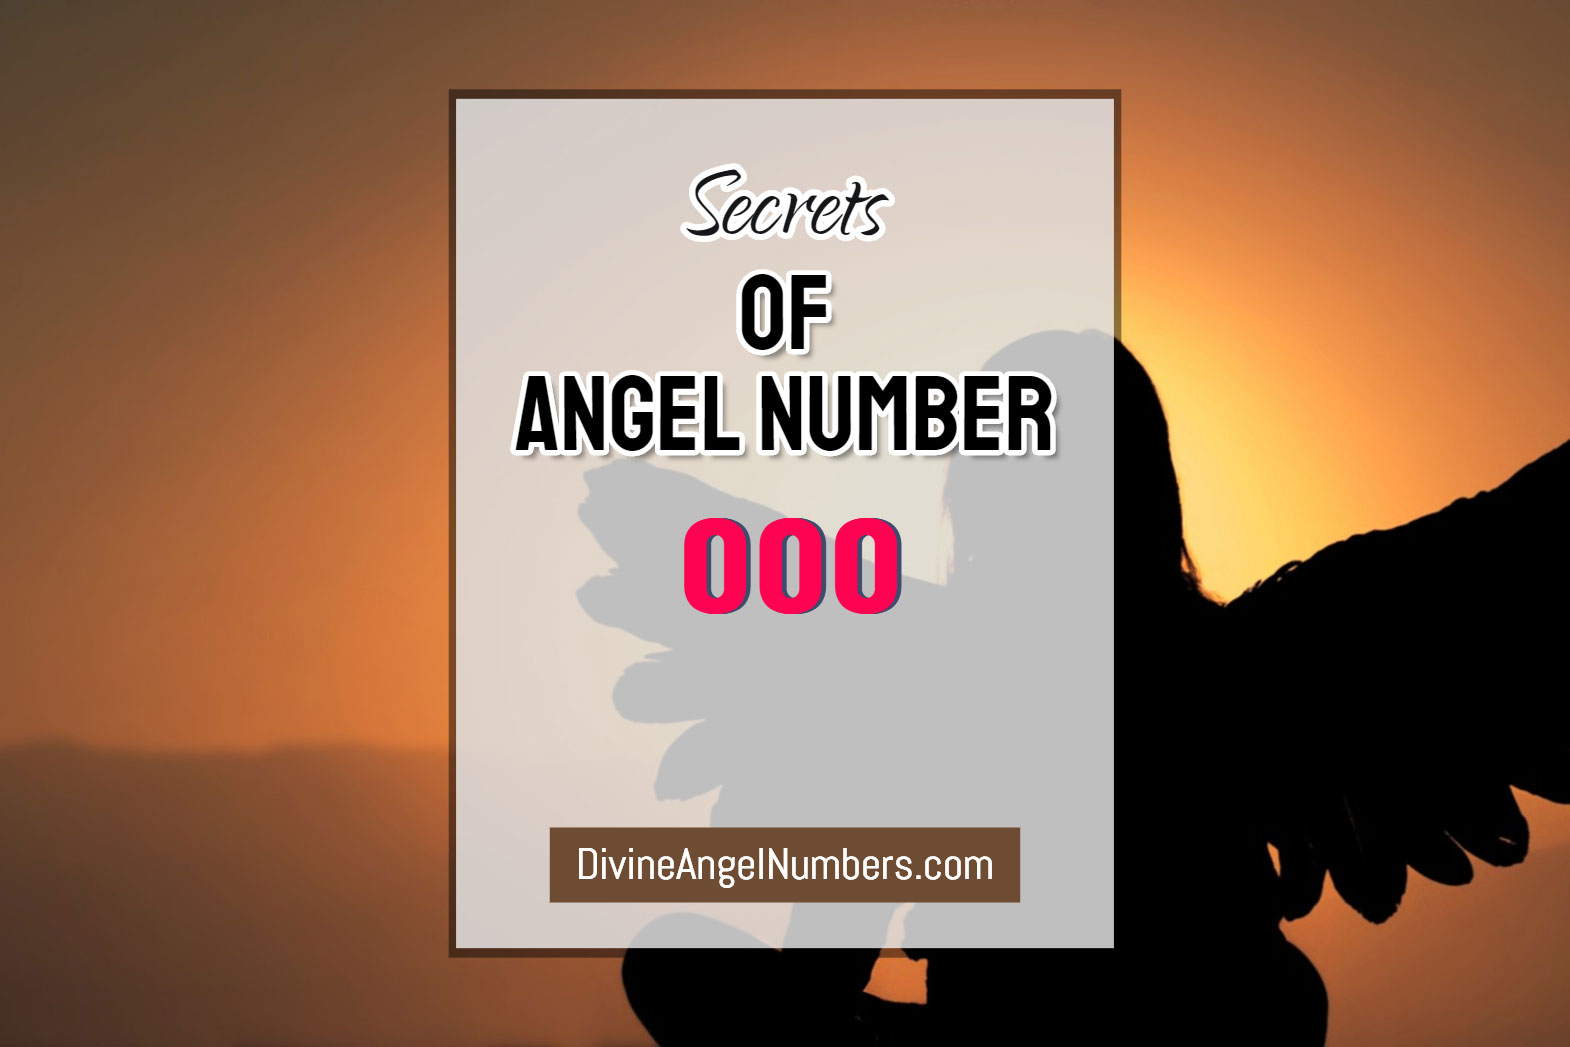 7 Reasons Why You Are Seeing 000 Angel Number : Meaning Of 000